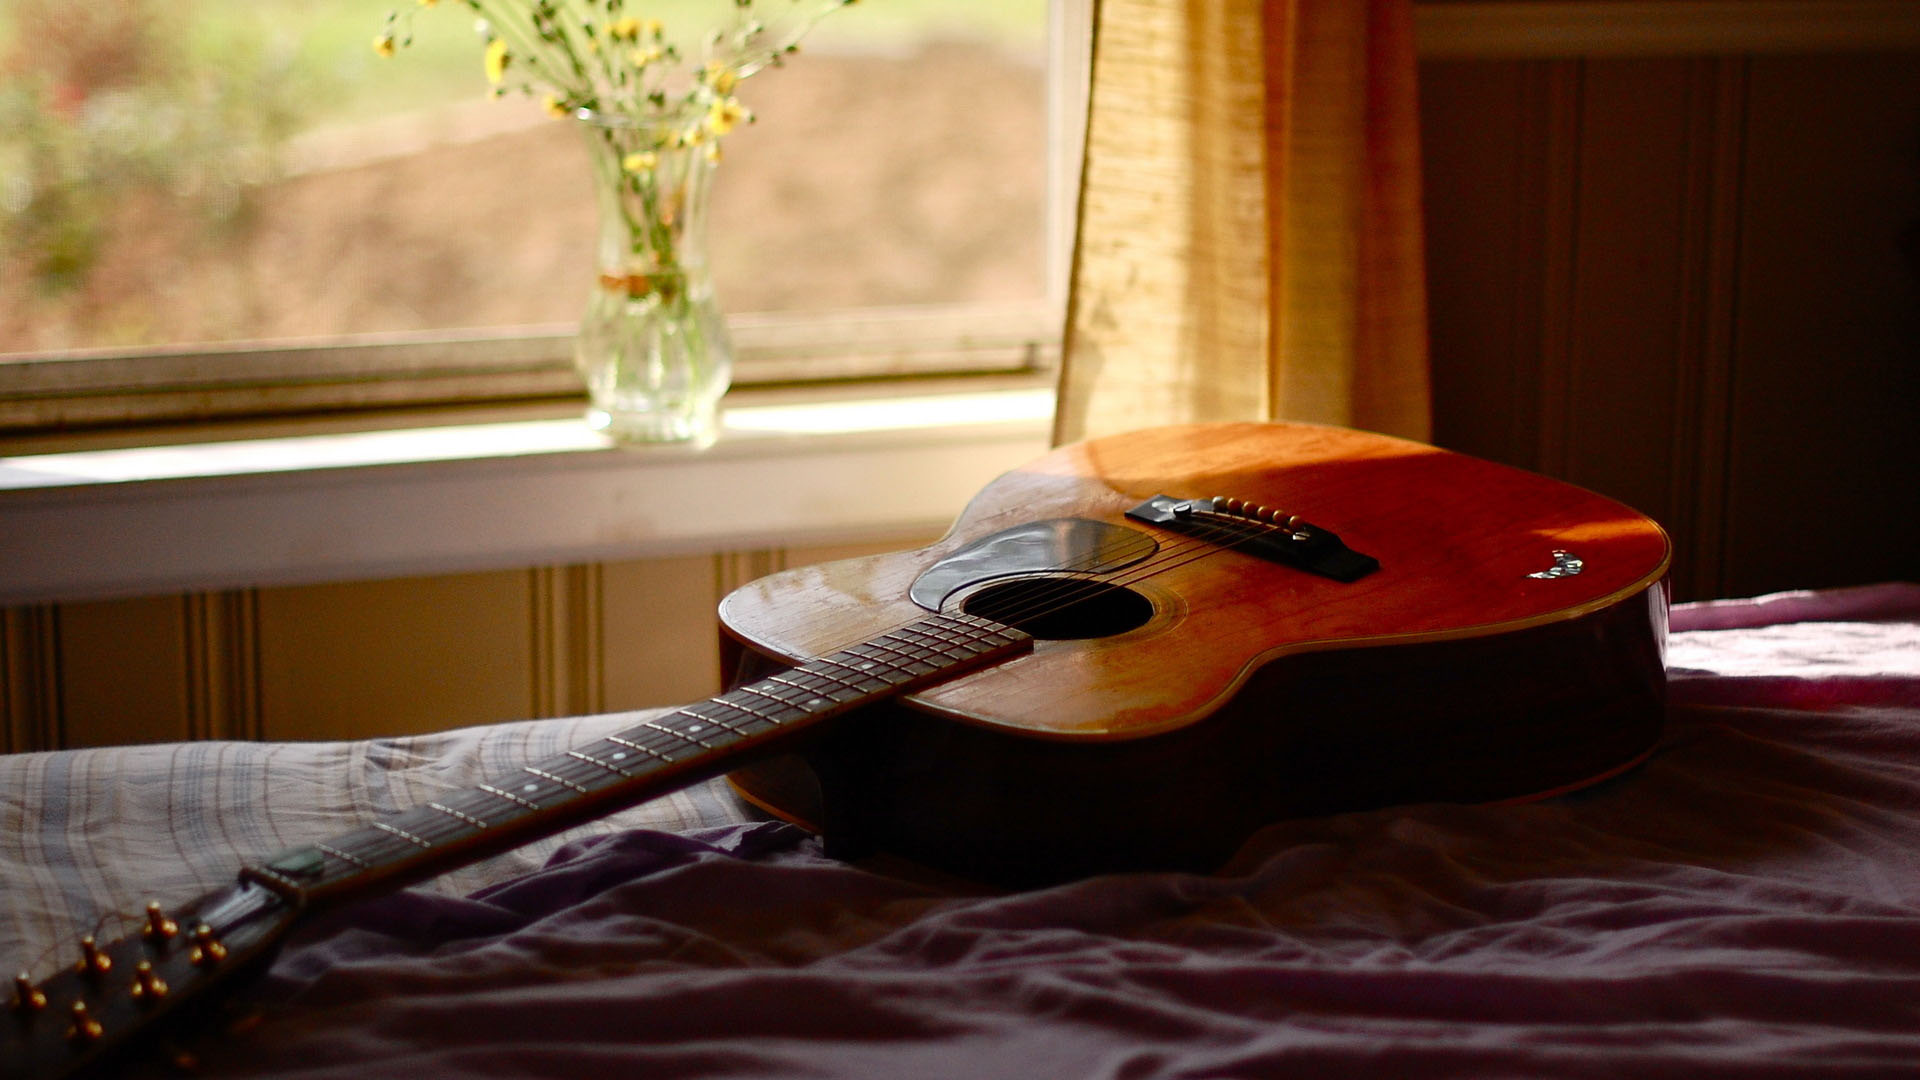 Acoustic Guitar Wallpaper For Mobile